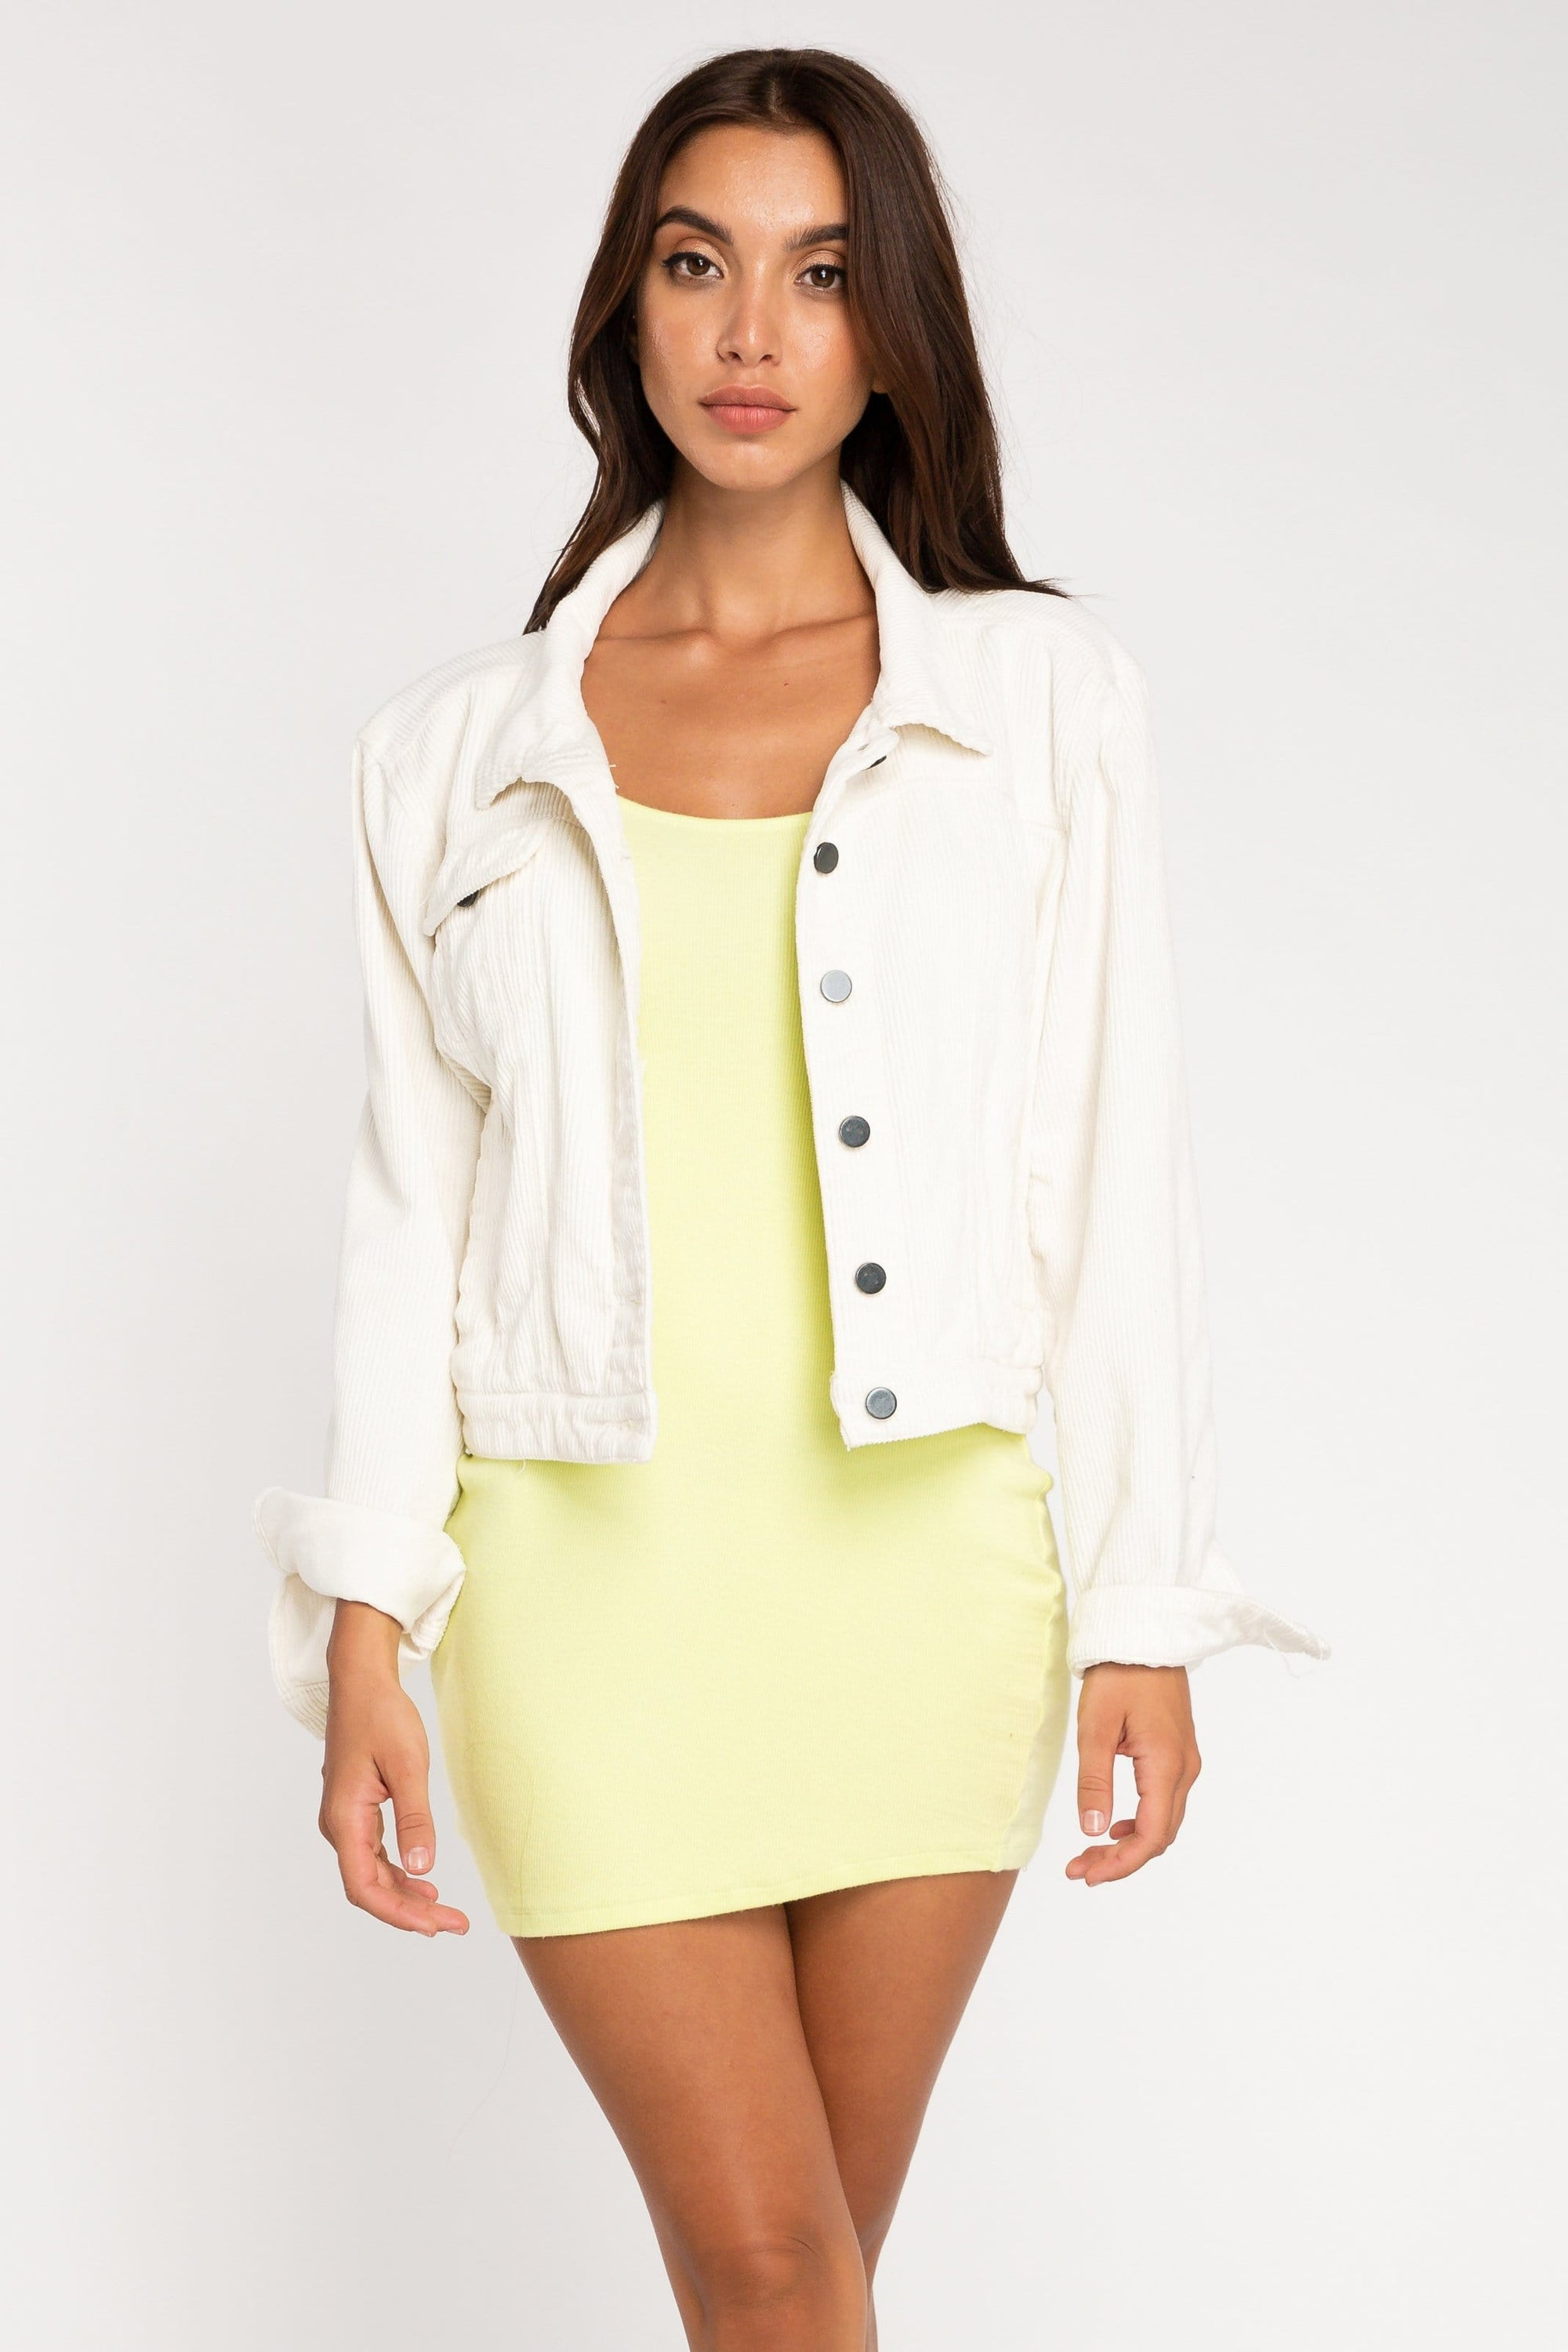 Beverly Cord Jacket - Woman Top - LOST IN PARADISE